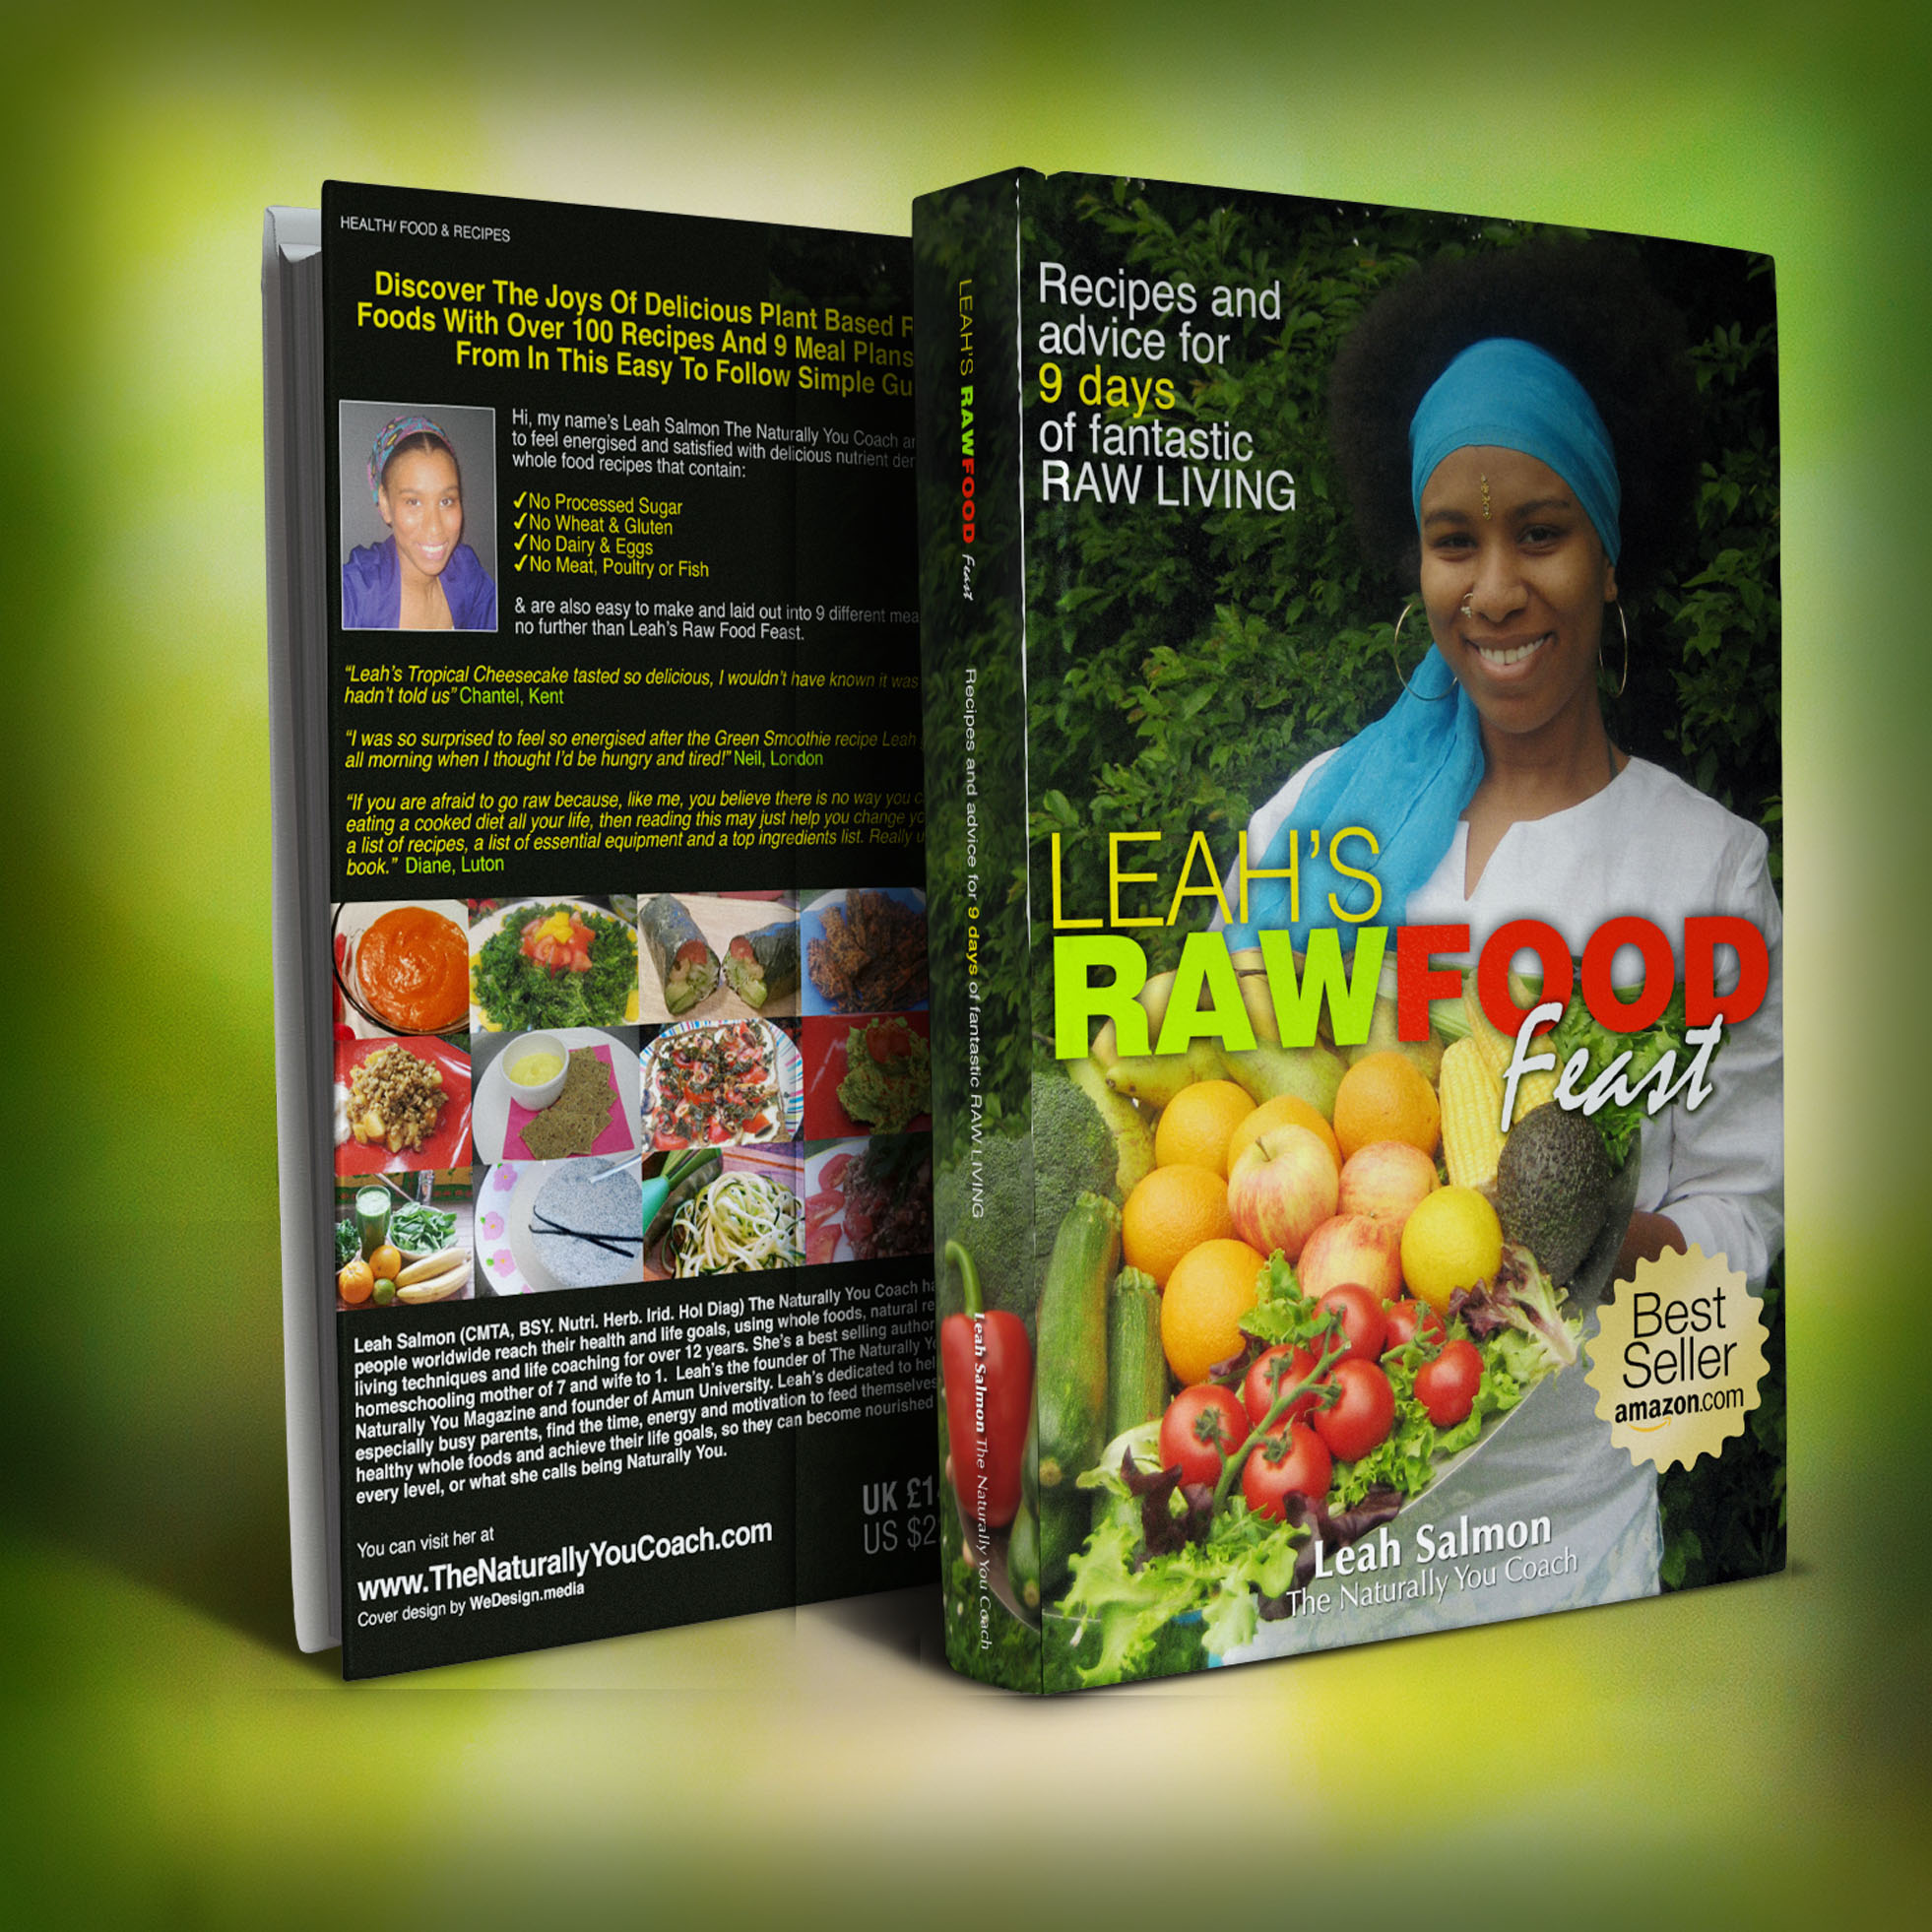 Leahs raw food feast raw food recipe book the naturally you coach leahs raw food feast raw food recipe book forumfinder Images